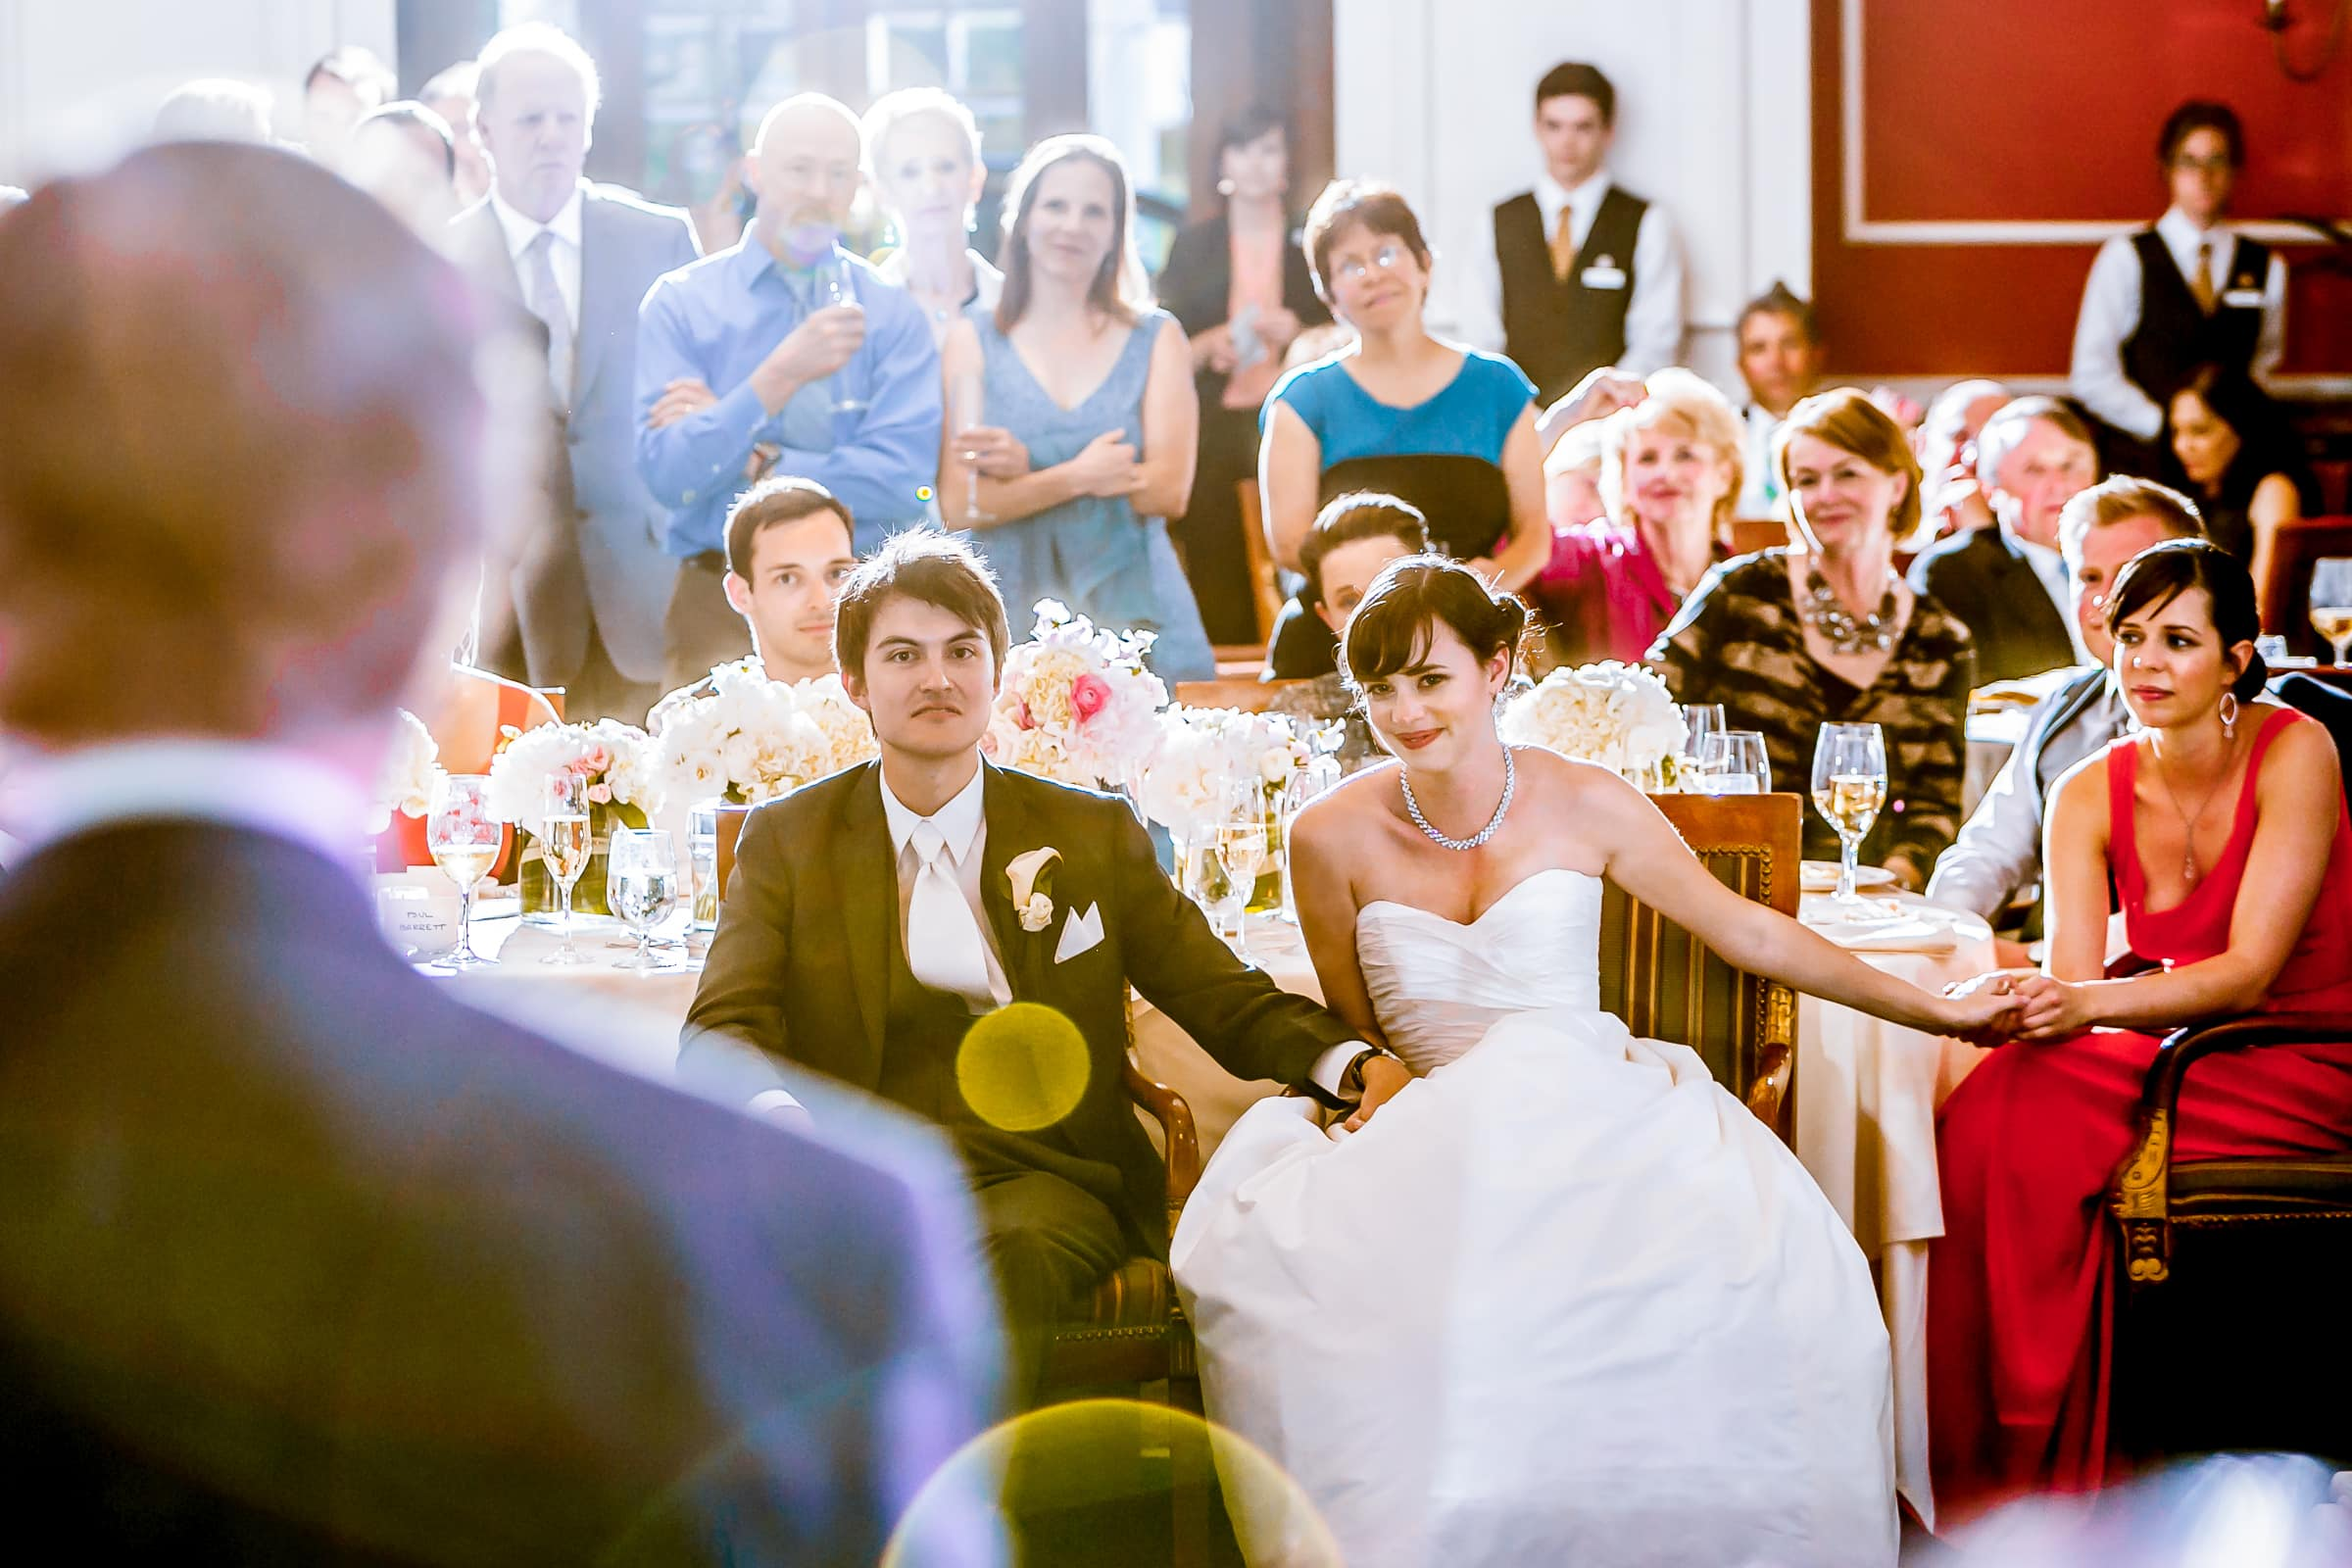 Emotional fathers speech to bride and groom during their Waverley Country Club wedding reception